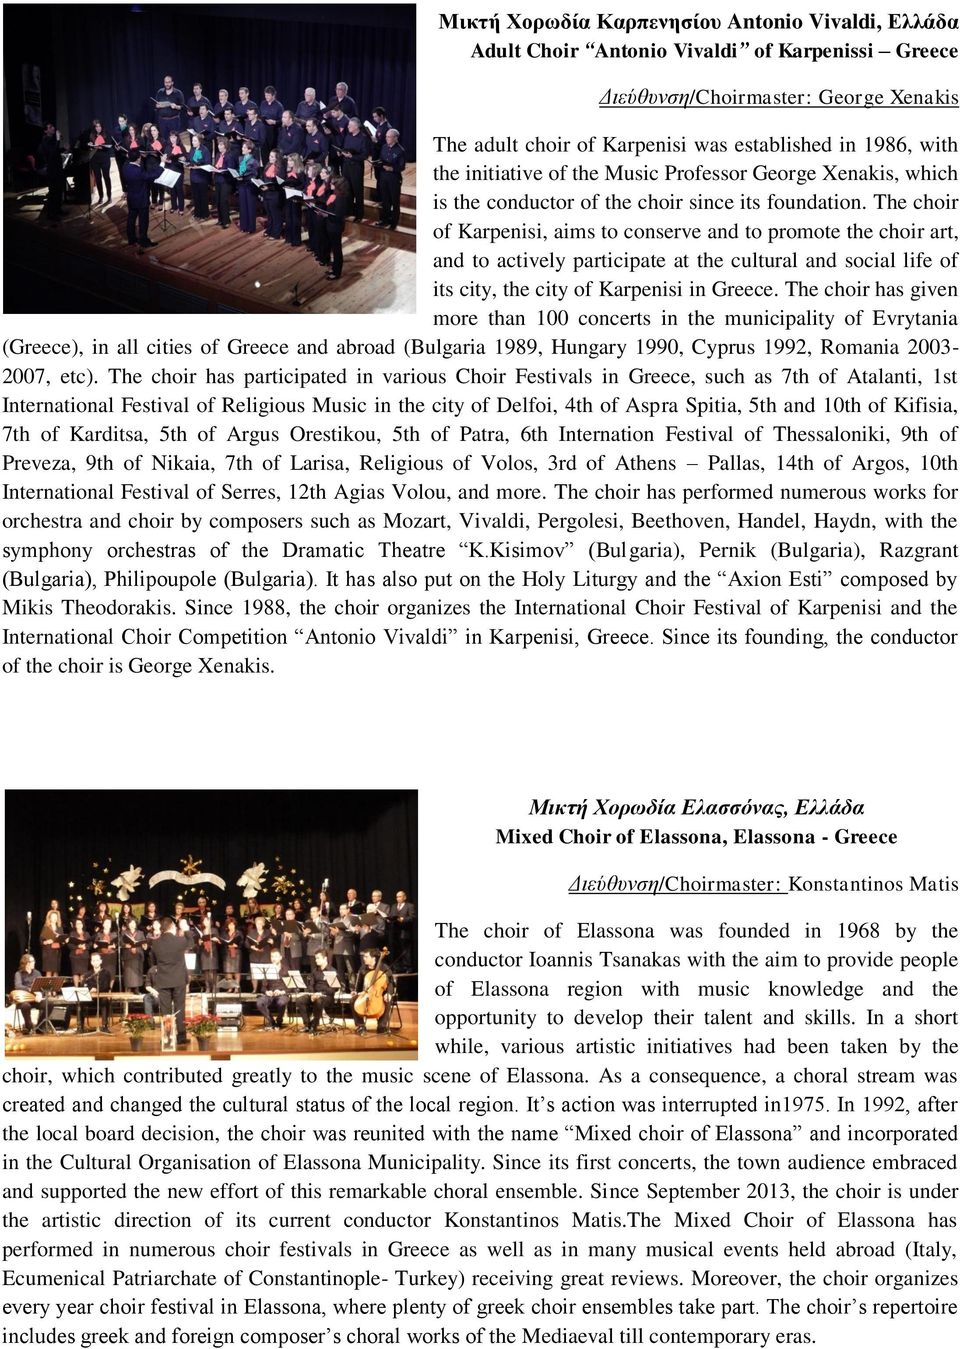 The choir of Karpenisi, aims to conserve and to promote the choir art, and to actively participate at the cultural and social life of its city, the city of Karpenisi in Greece.